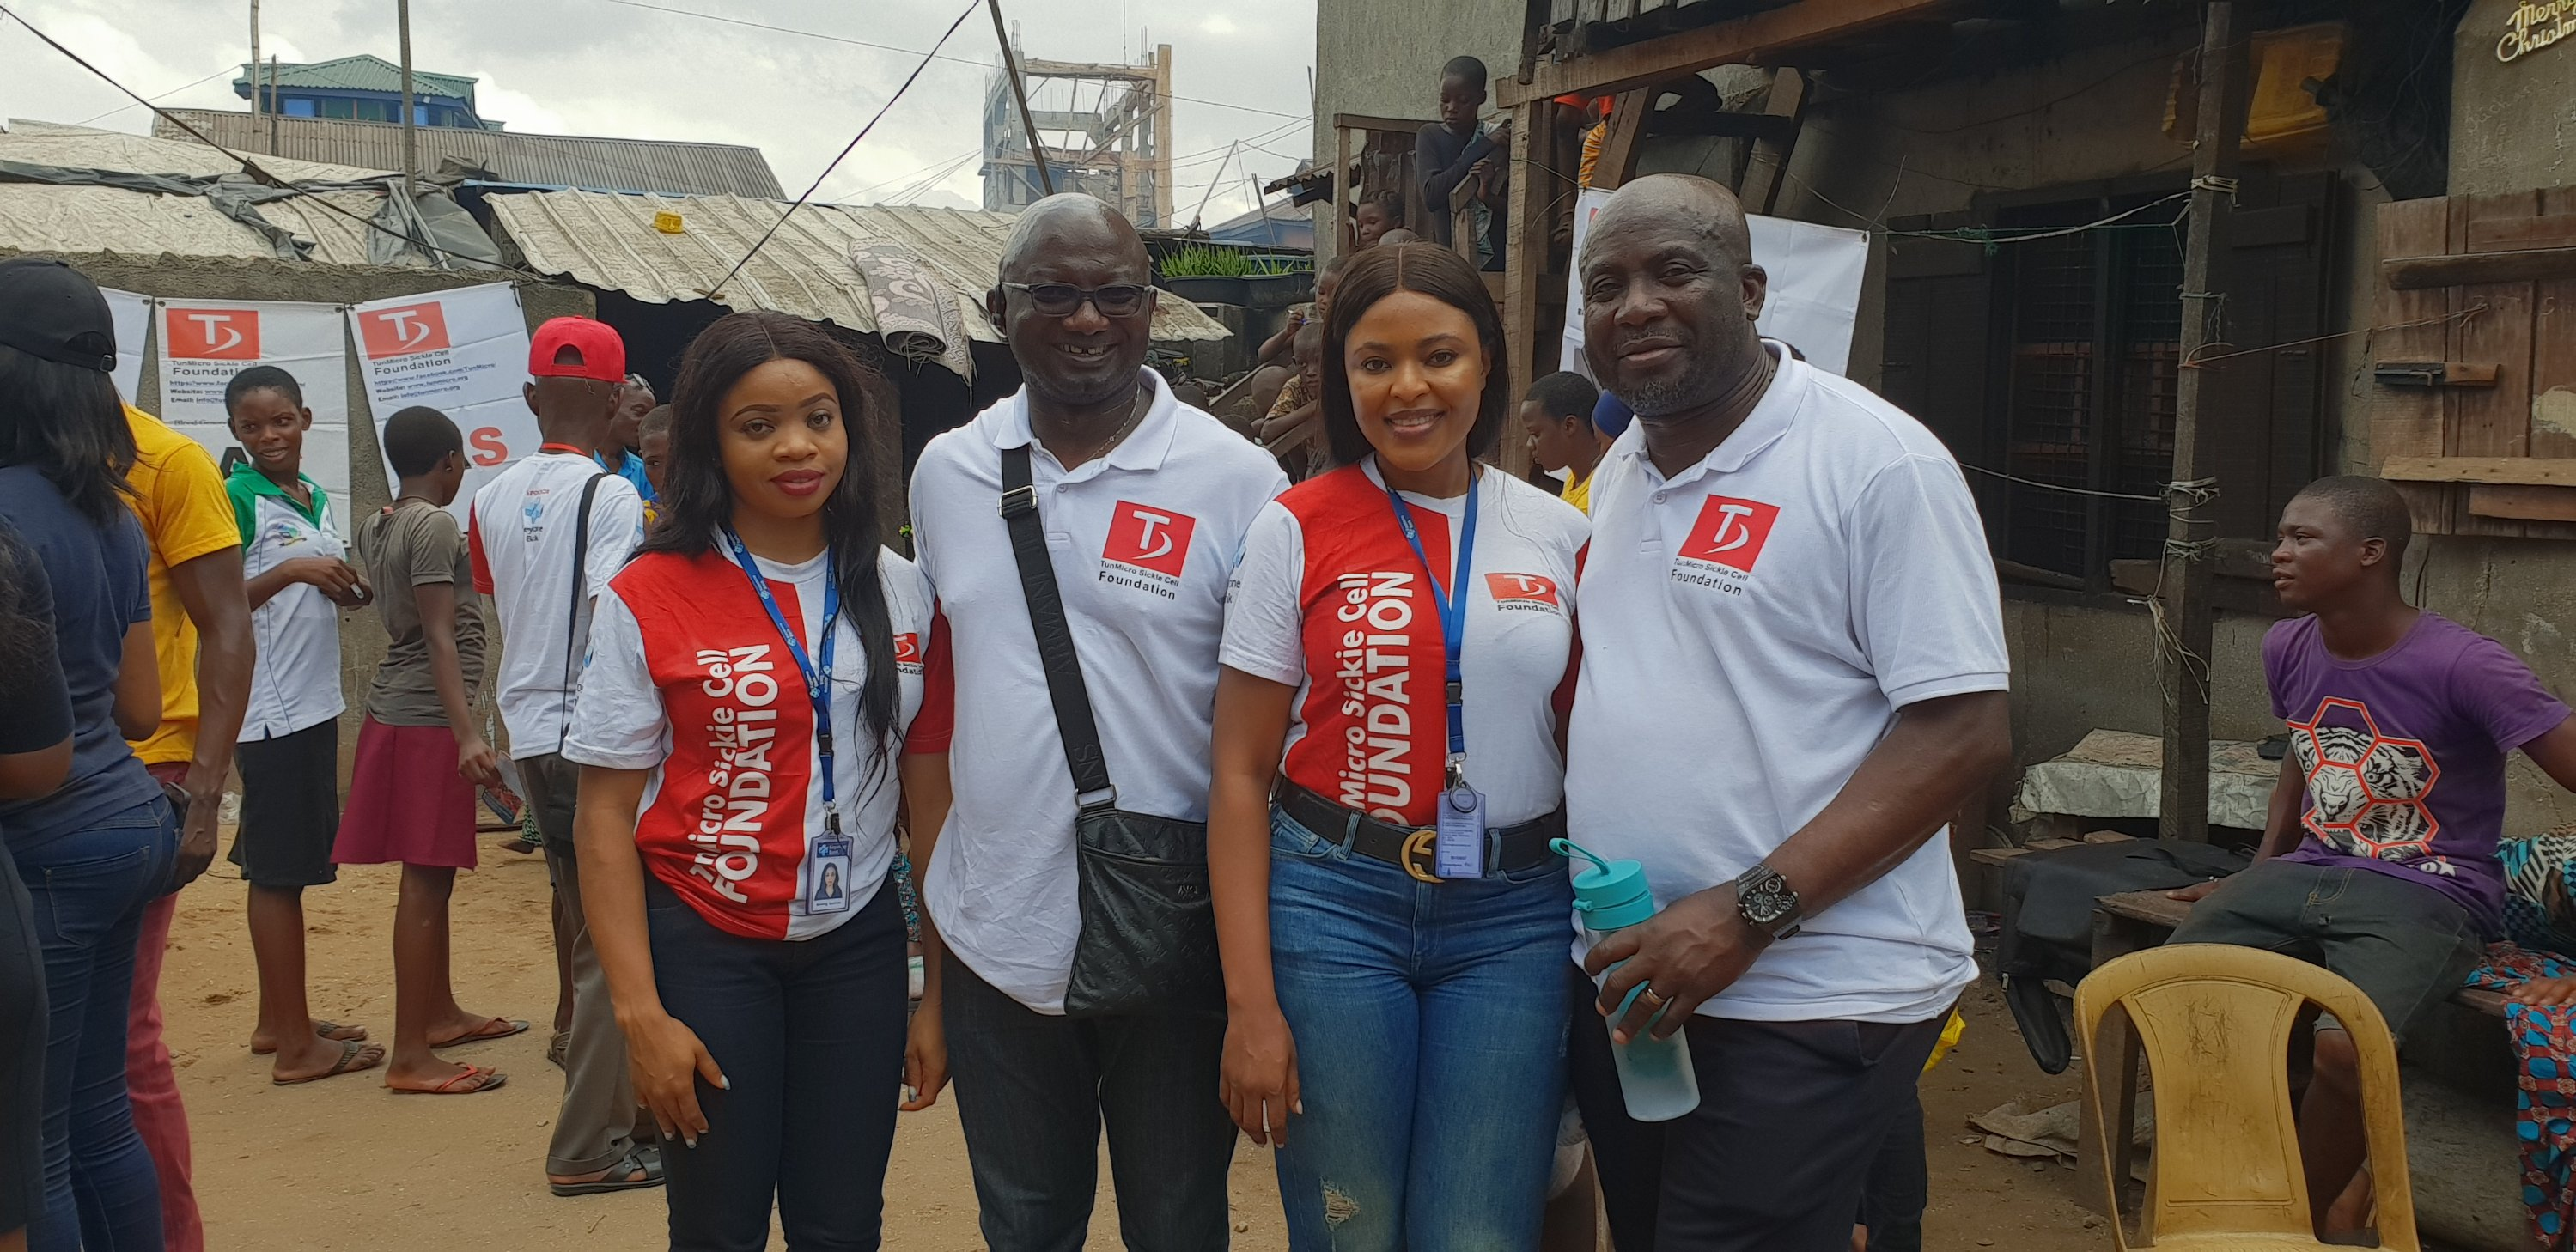 L-R: Miss Blessing Ayorinde, CSR, Keystone Bank Limited; Ismaila Olatunji Sule, Trustee/Founder, TunMicro Sickle Cell Foundation; Izore Bamawo, Head, CSR, Keystone Bank Limited and Ola Ogundemi, Trustee/Director of Communication, TunMicro Sickle Cell Foundation, at the Sickle Cell Disease awareness and free testing programme organised by TunMicro Sickle Cell Foundation in conjunction with Keystone Bank and 'Slum2School Africa' in Lagos, recently.